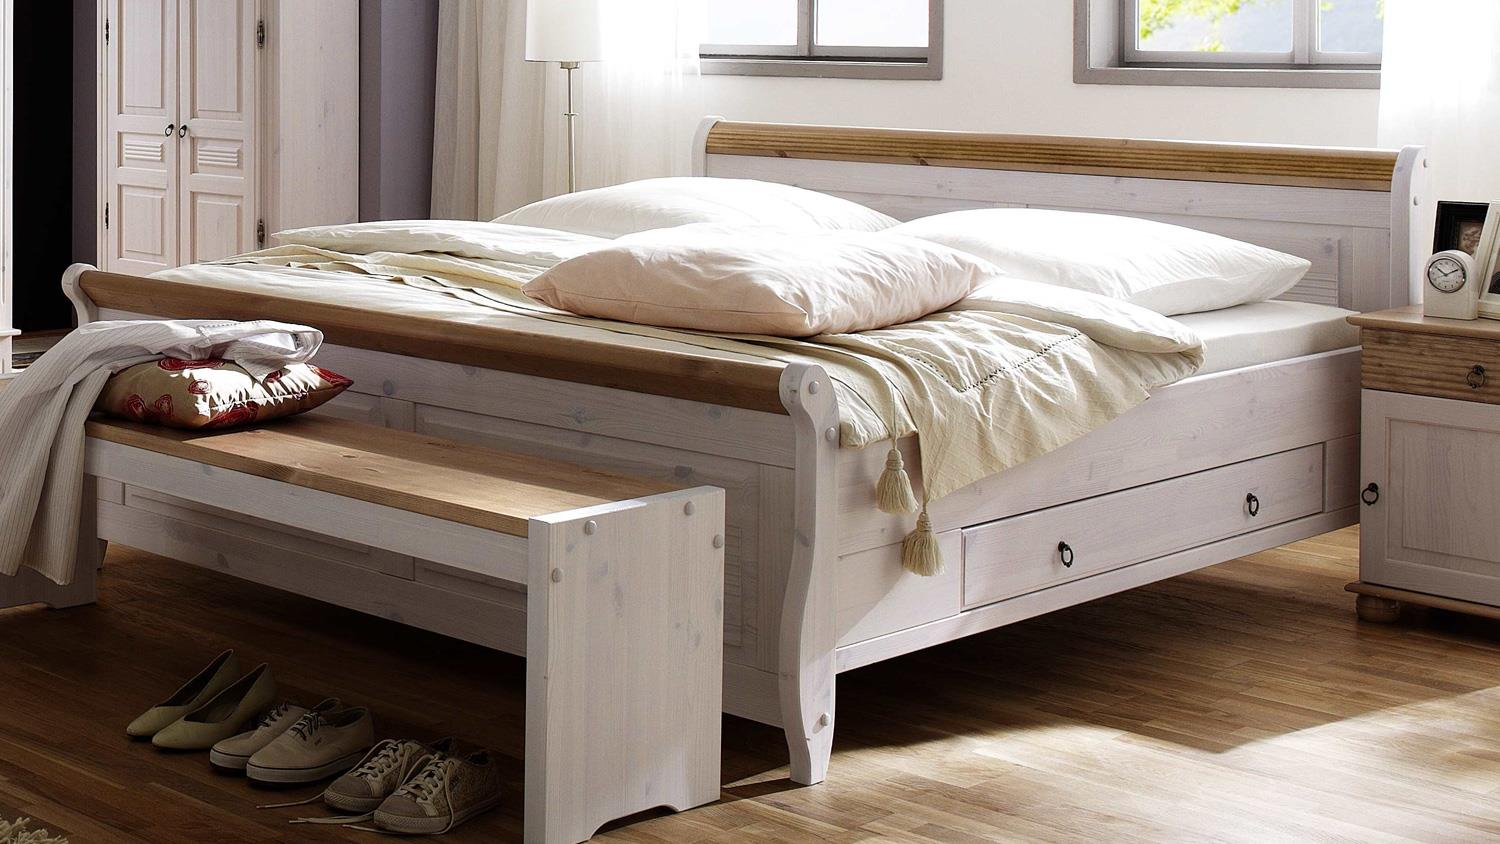 bett oslo doppelbett aus kiefer massiv wei antik 180x200 cm. Black Bedroom Furniture Sets. Home Design Ideas